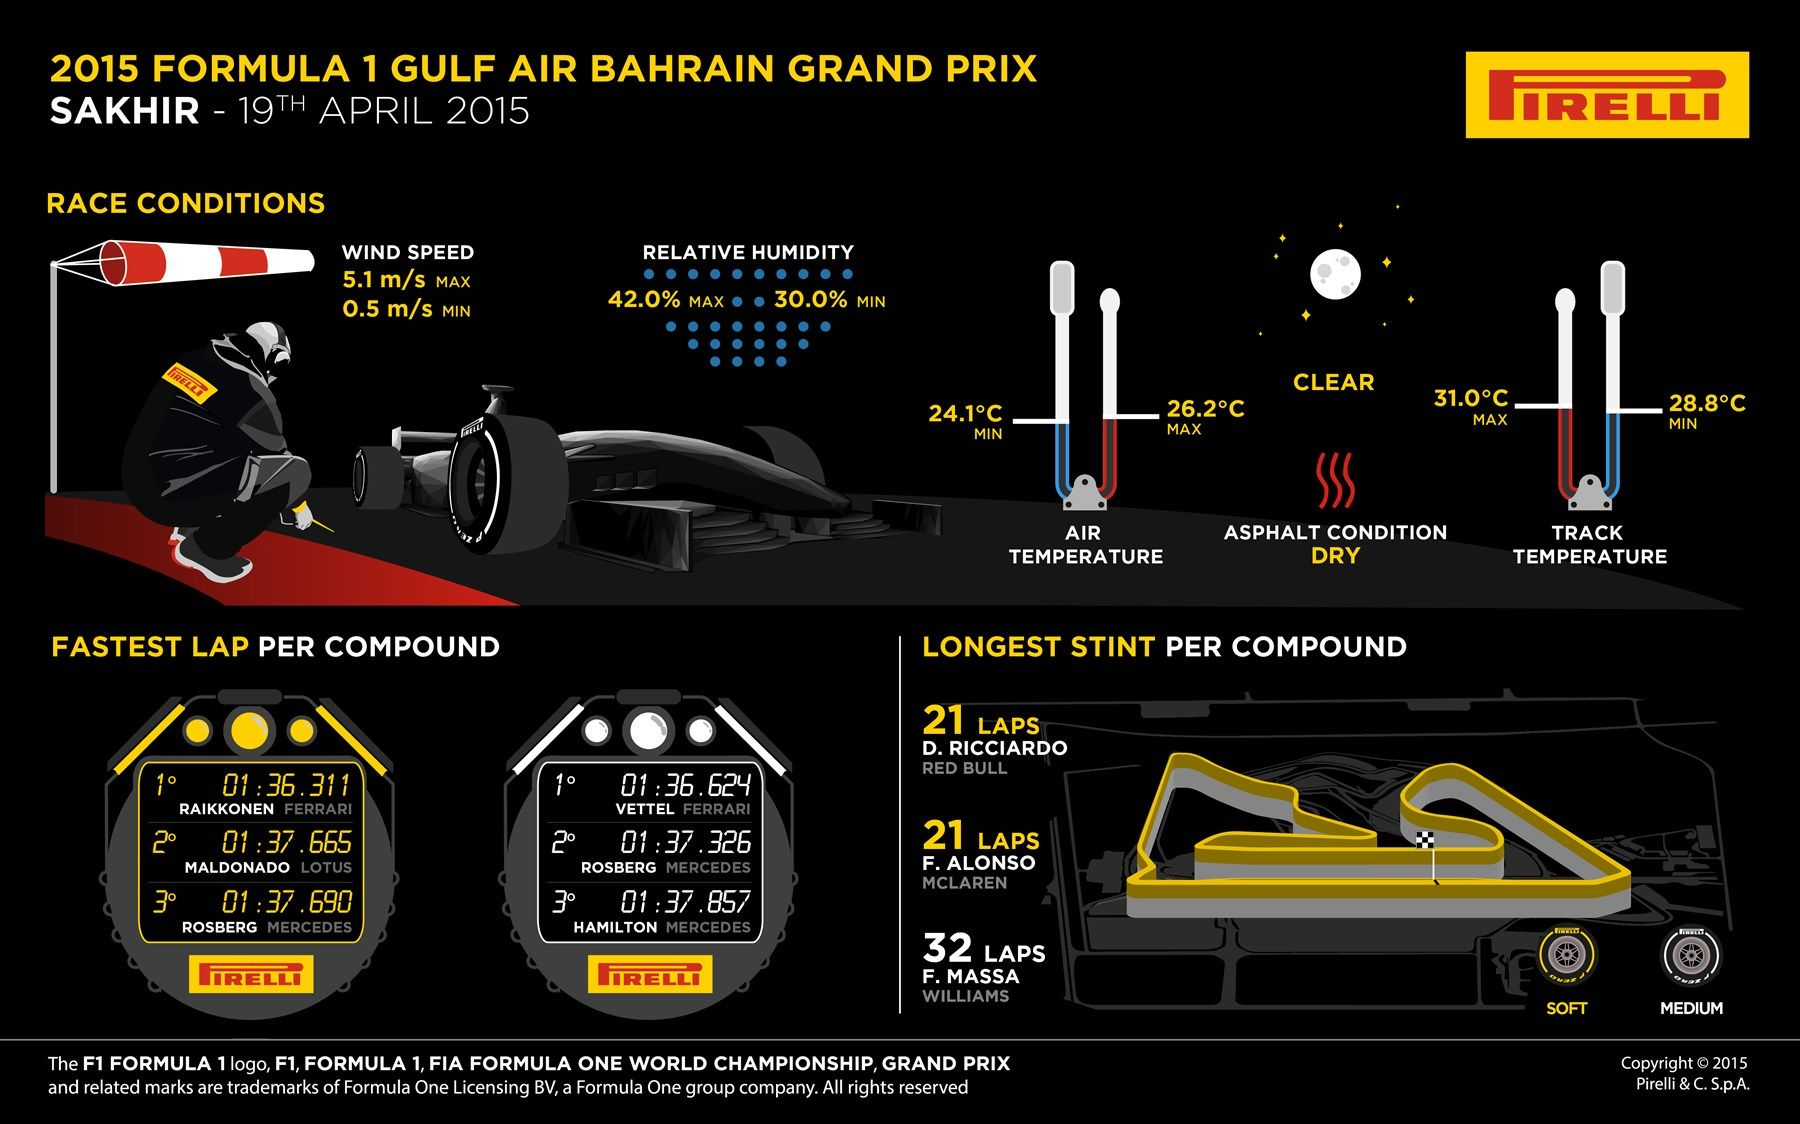 2015-Bahrain-Grand-Prix-Ferrari-Race-Results-compound